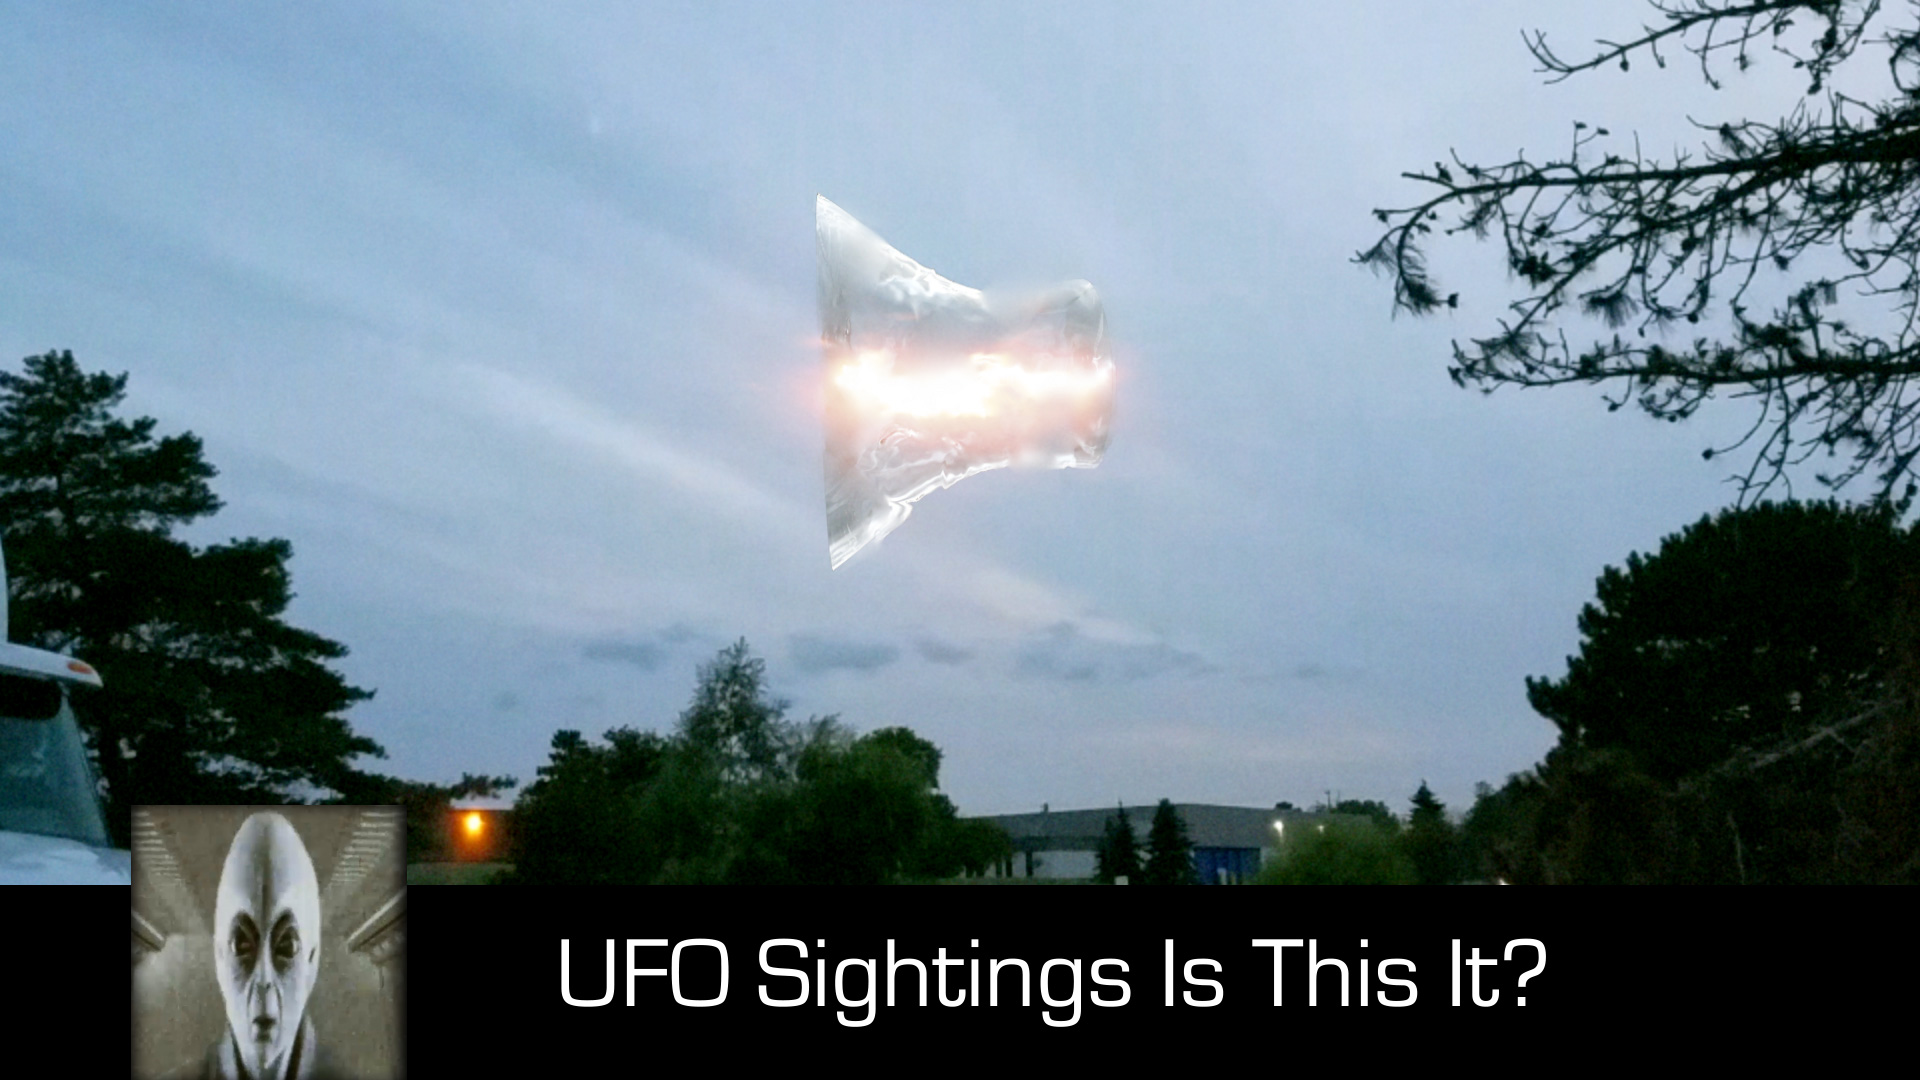 UFO Sightings Is This It September 6th 2017